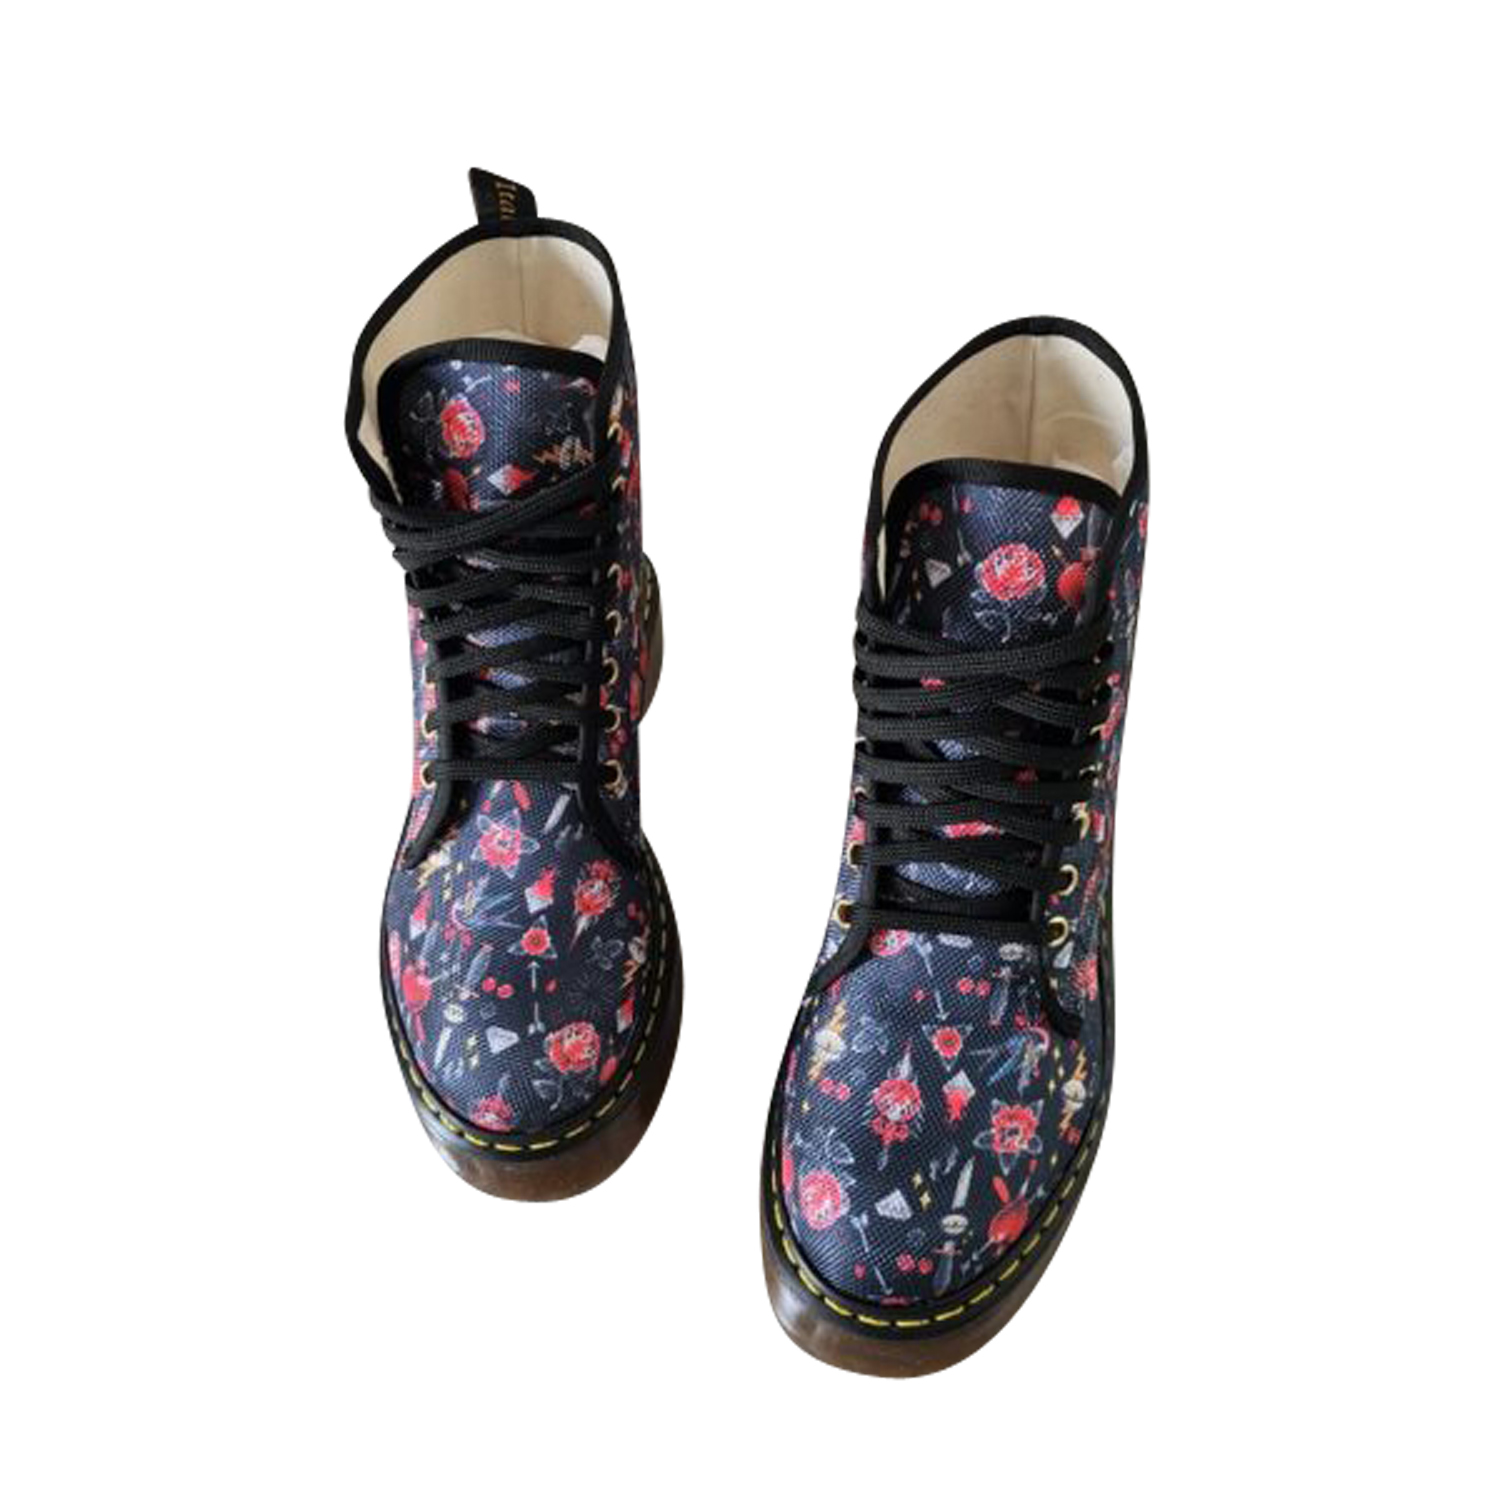 JAMMERS LONDON OXFORD FIORE NERO